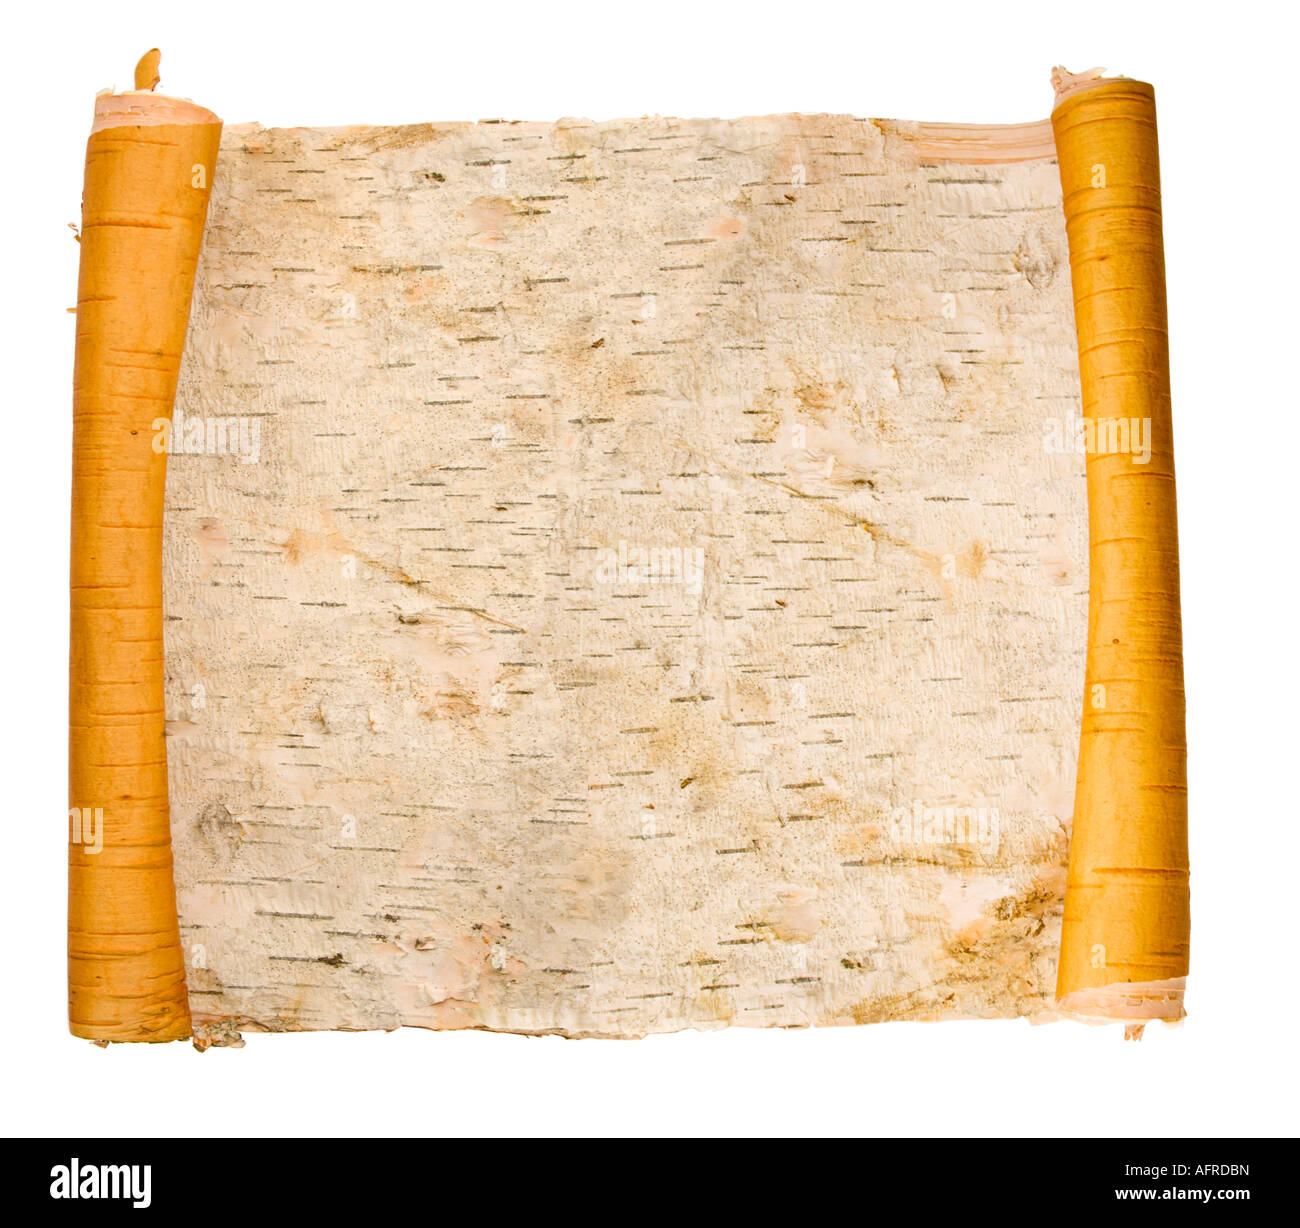 expanded birchen bark scroll isolated on white - Stock Image